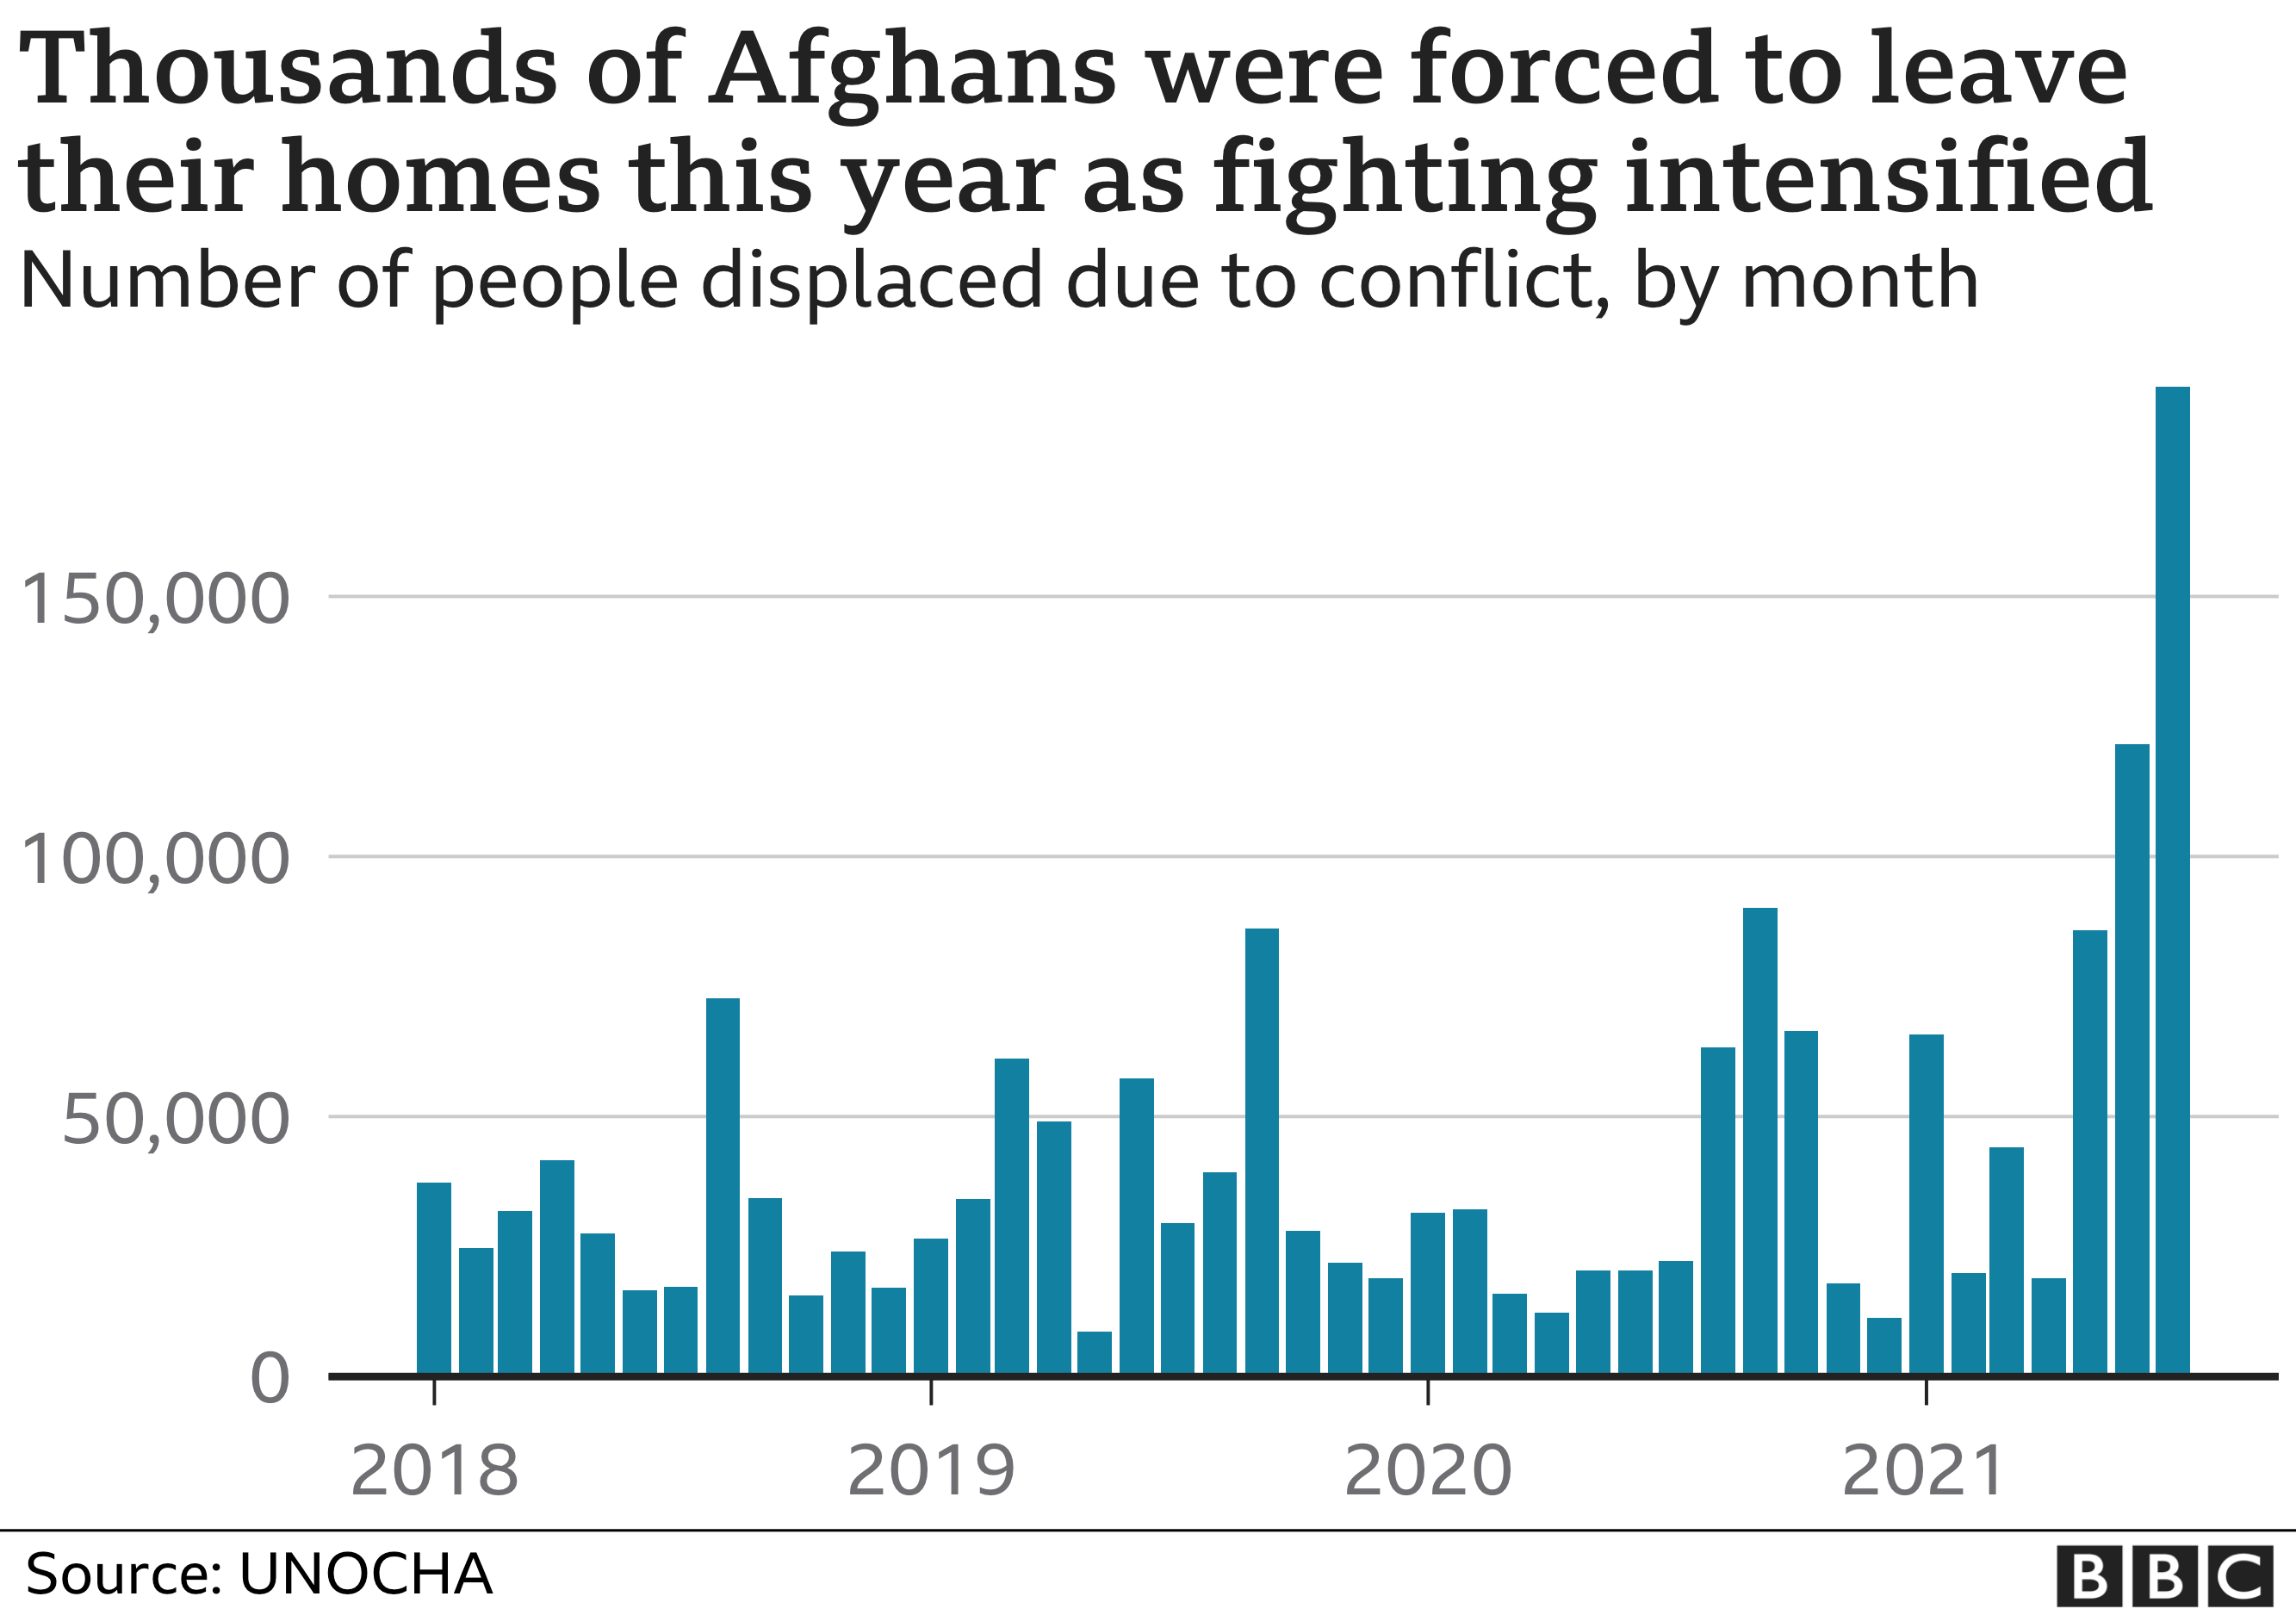 Chart showing the number of Afghans internally displaced due to conflict since 2018